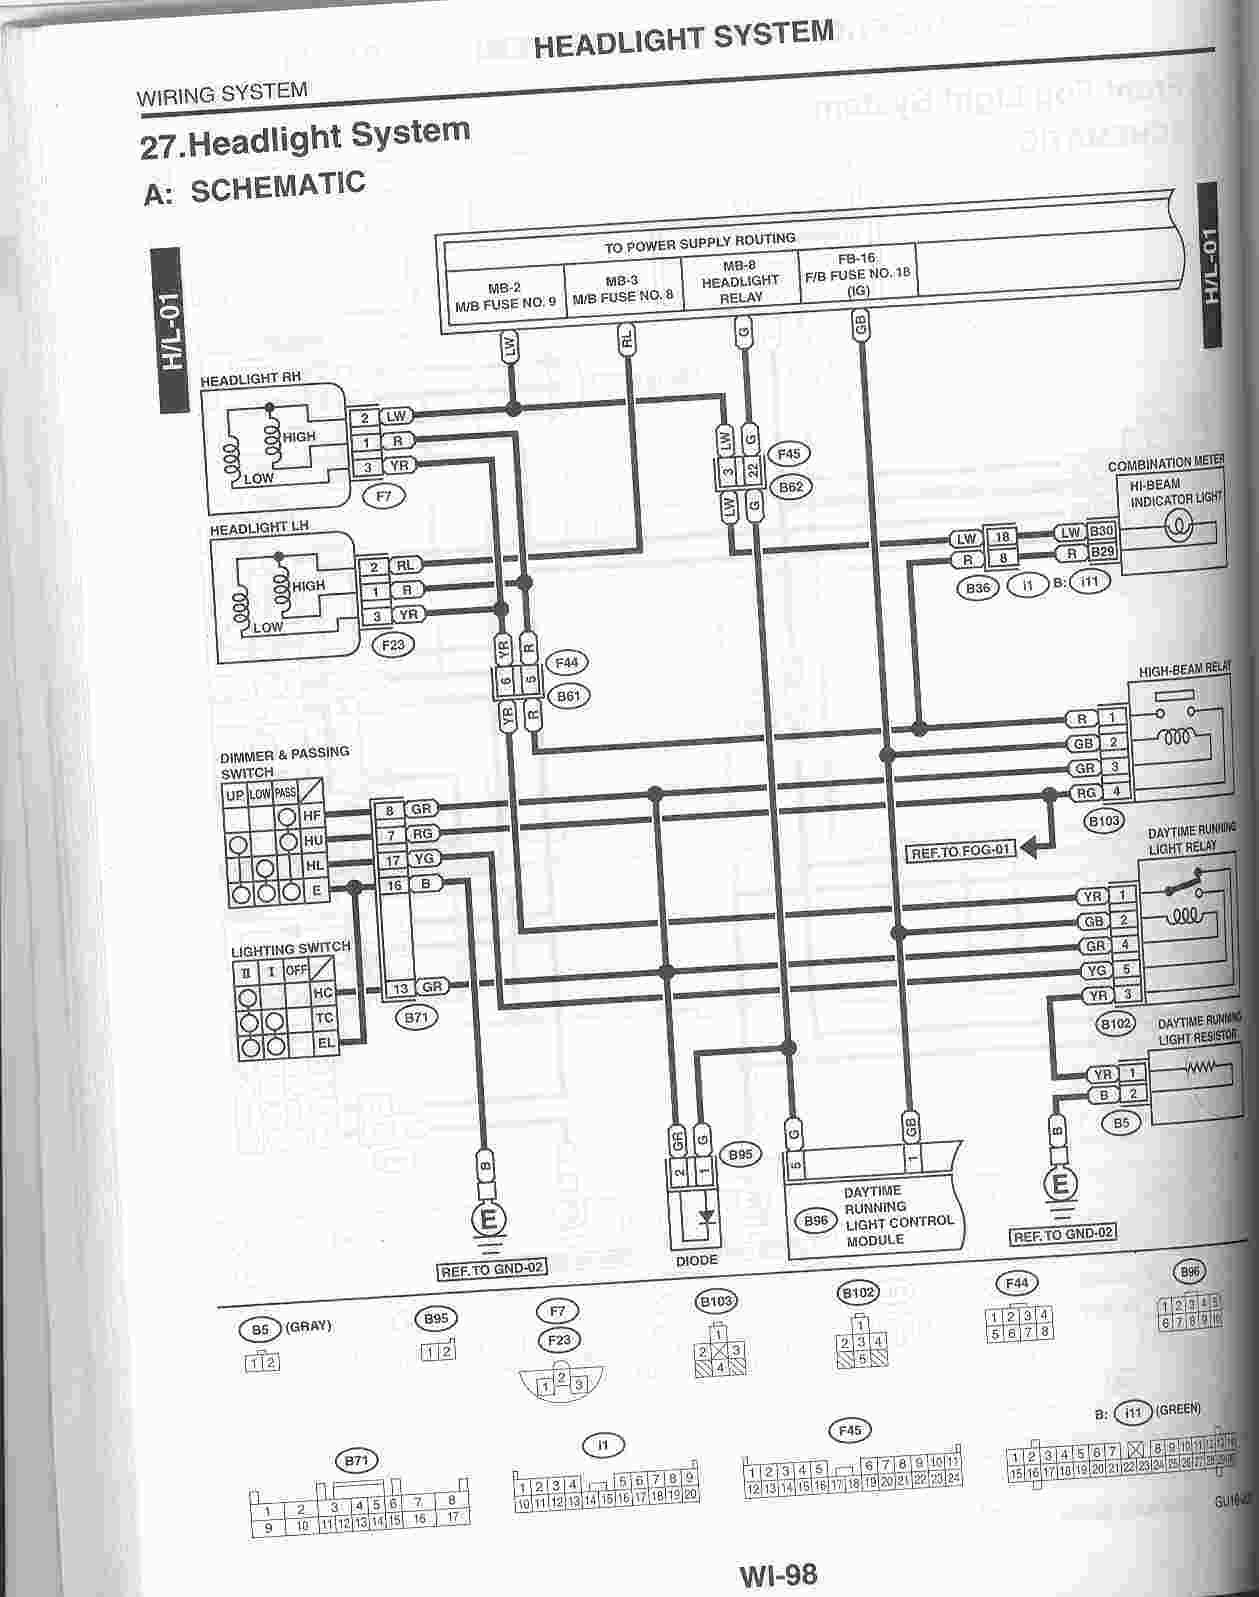 subaru domingo wiring diagram - wiring diagram log dear-super-a -  dear-super-a.superpolobio.it  super polobio